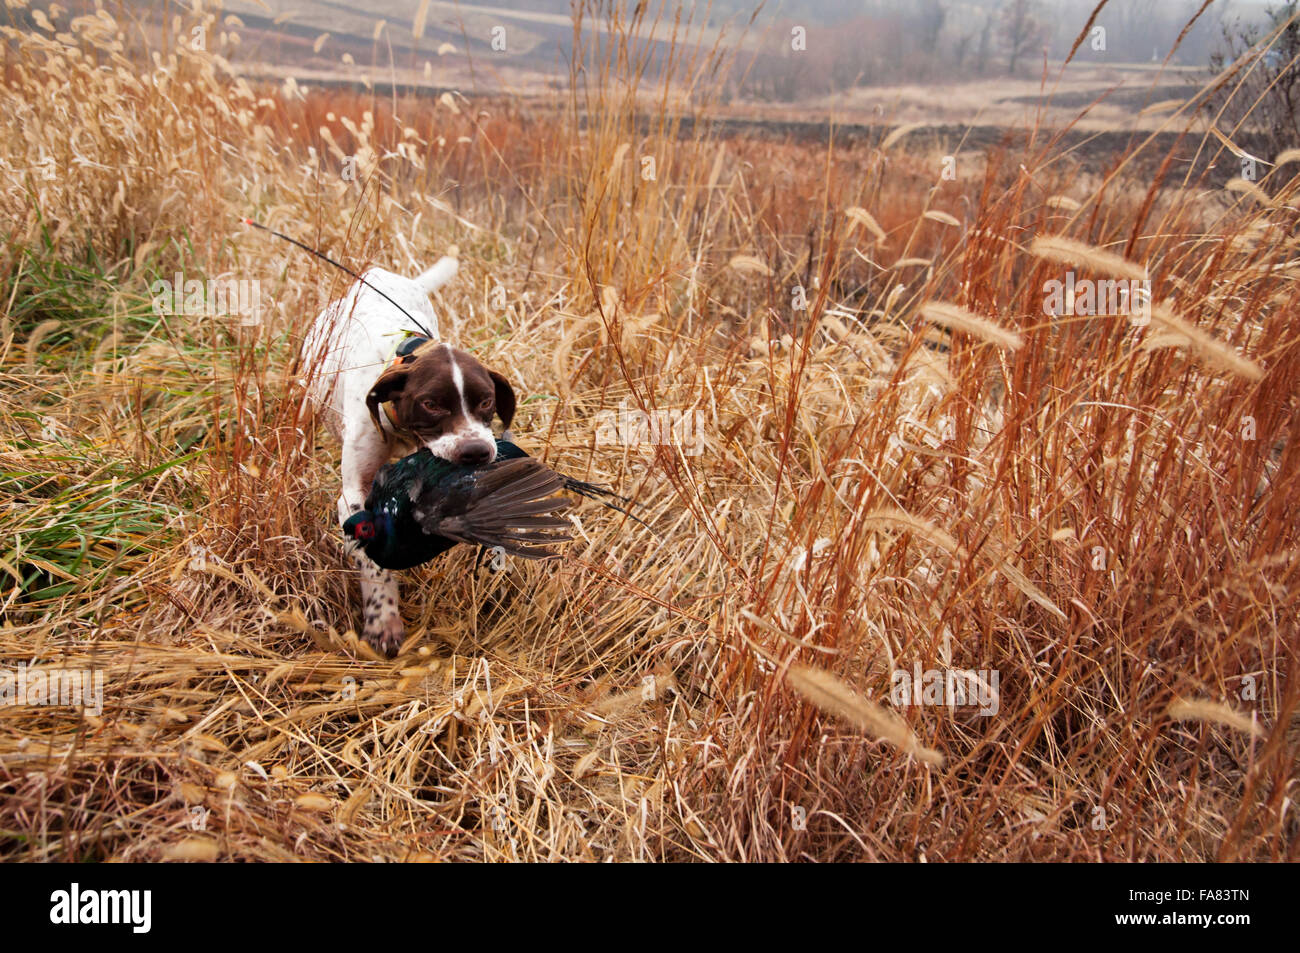 German Shorthair dog retrieves pheasant - Stock Image